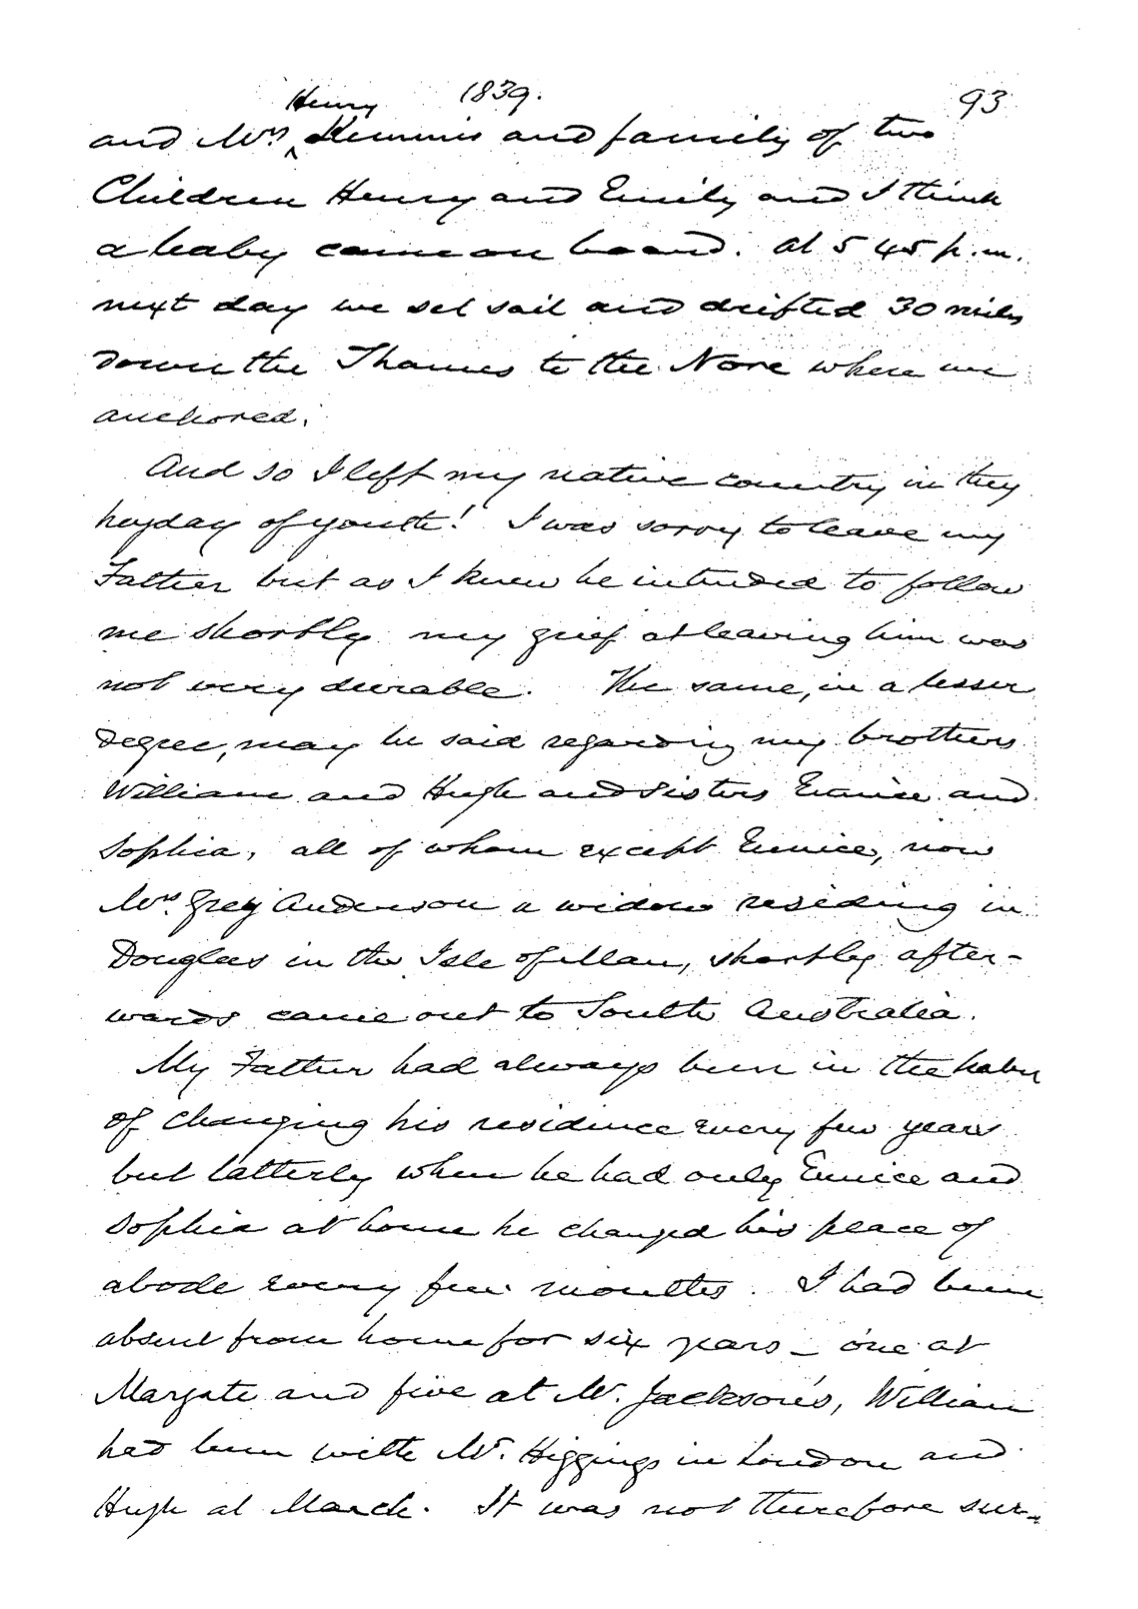 Chauncy PAC-10024086 memoirs page 115 of 220 pages